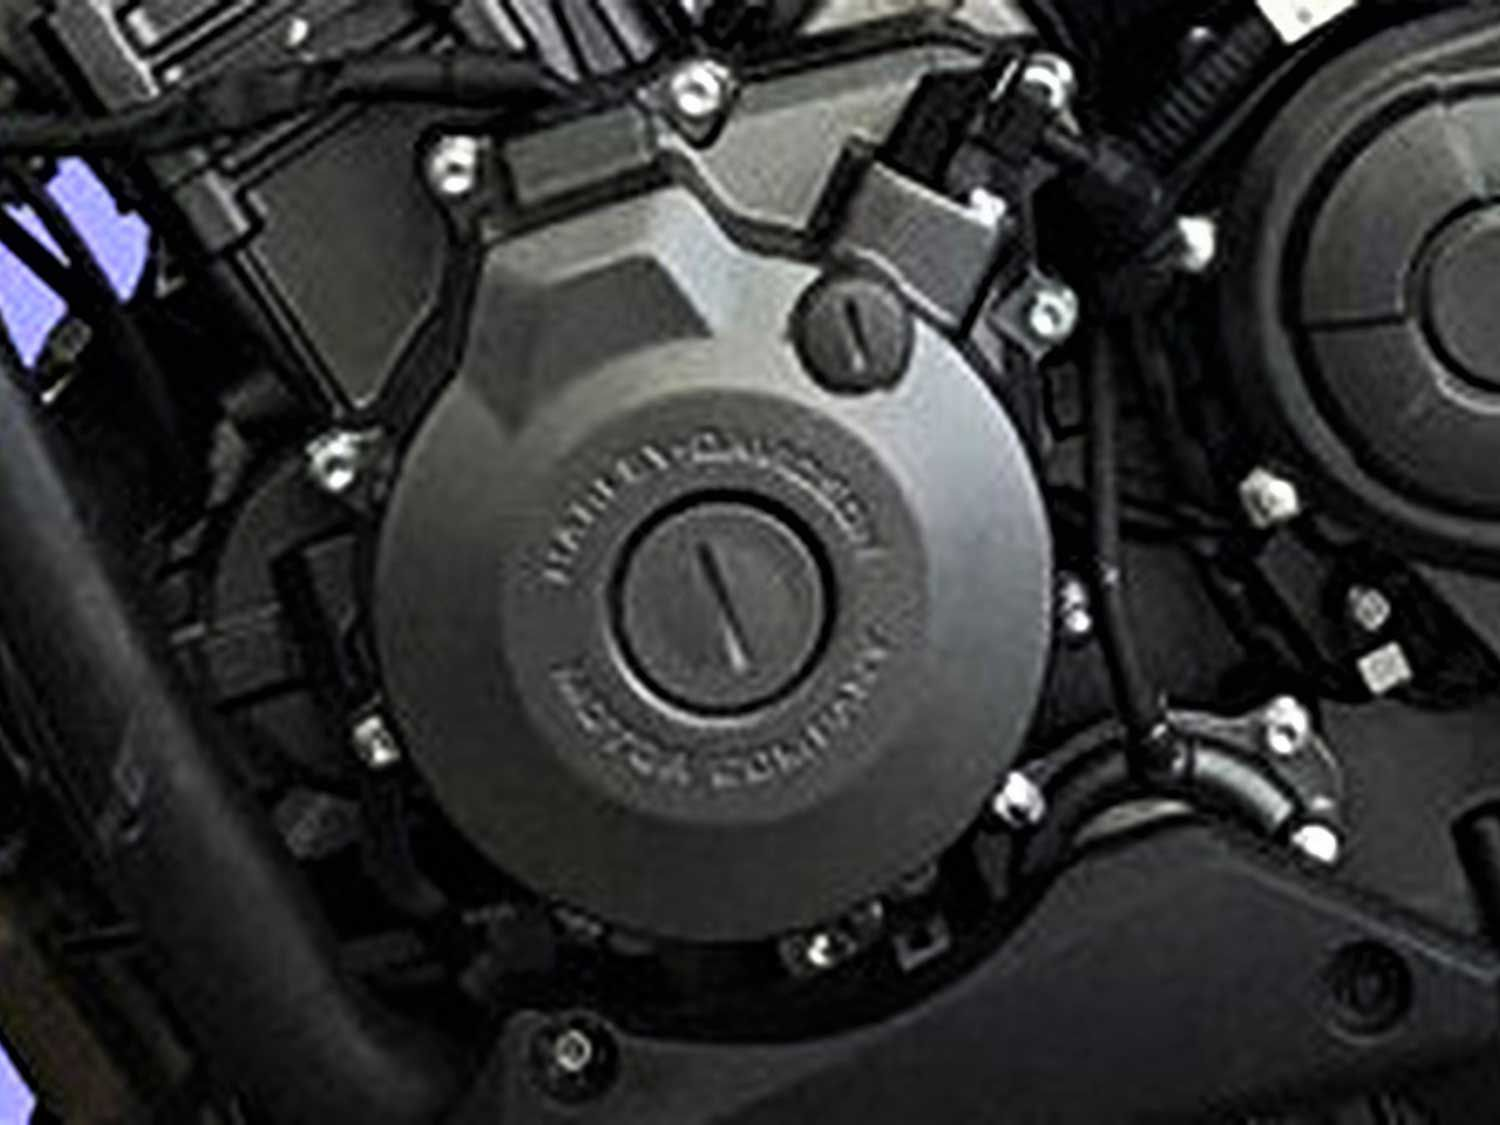 Squint enough and you'll make out the Harley-Davidson stamp on the left engine cover of the QJMotor-branded bike.